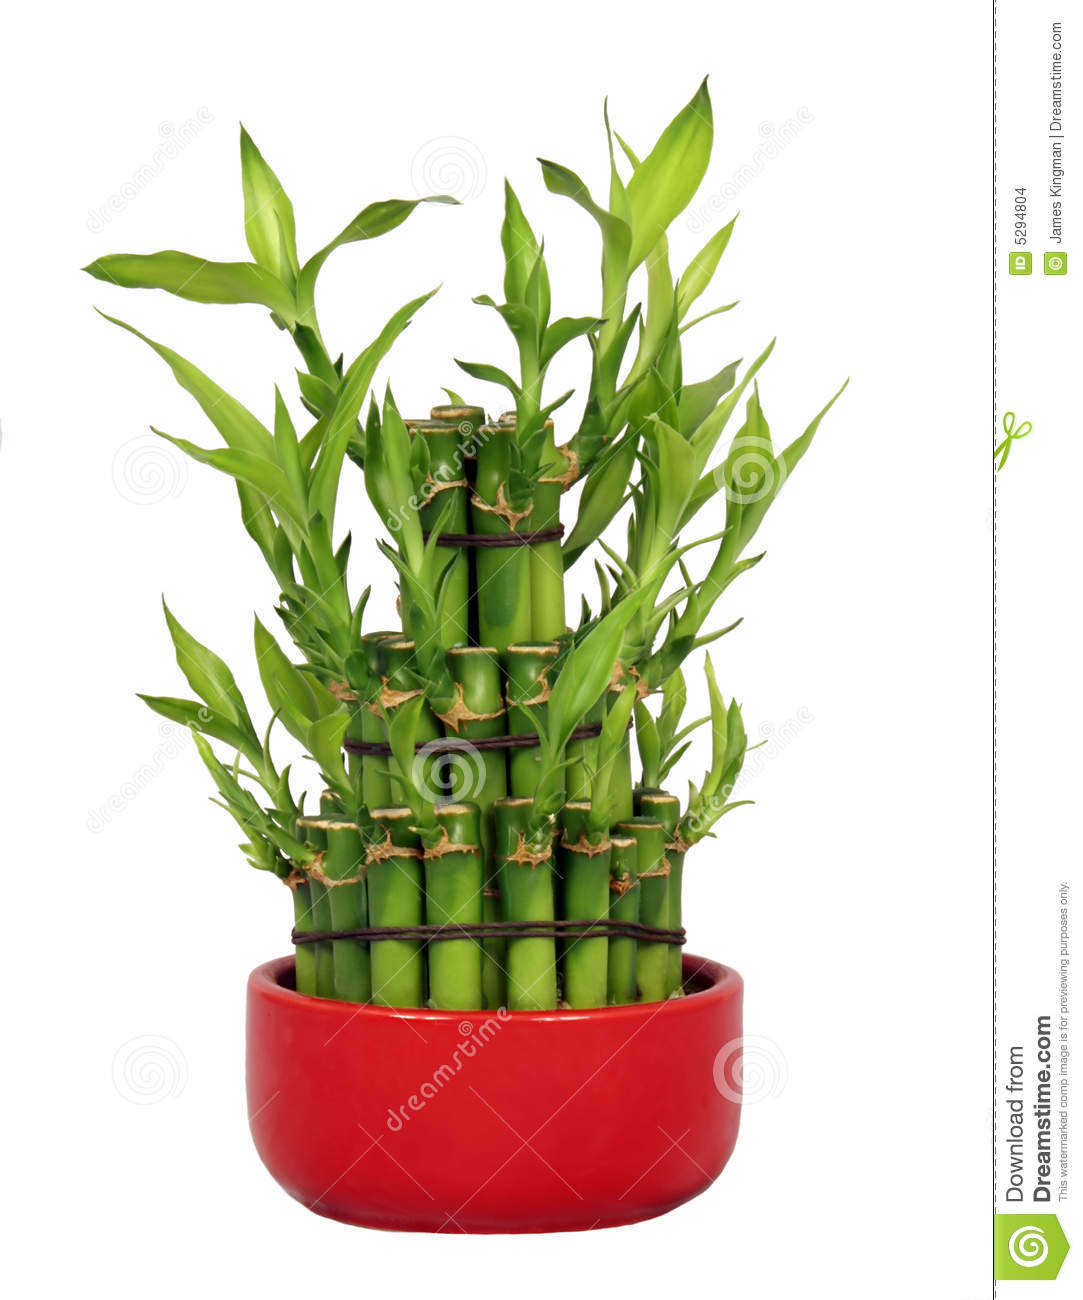 lucky bamboo stock photo image of stick flora luck. Black Bedroom Furniture Sets. Home Design Ideas